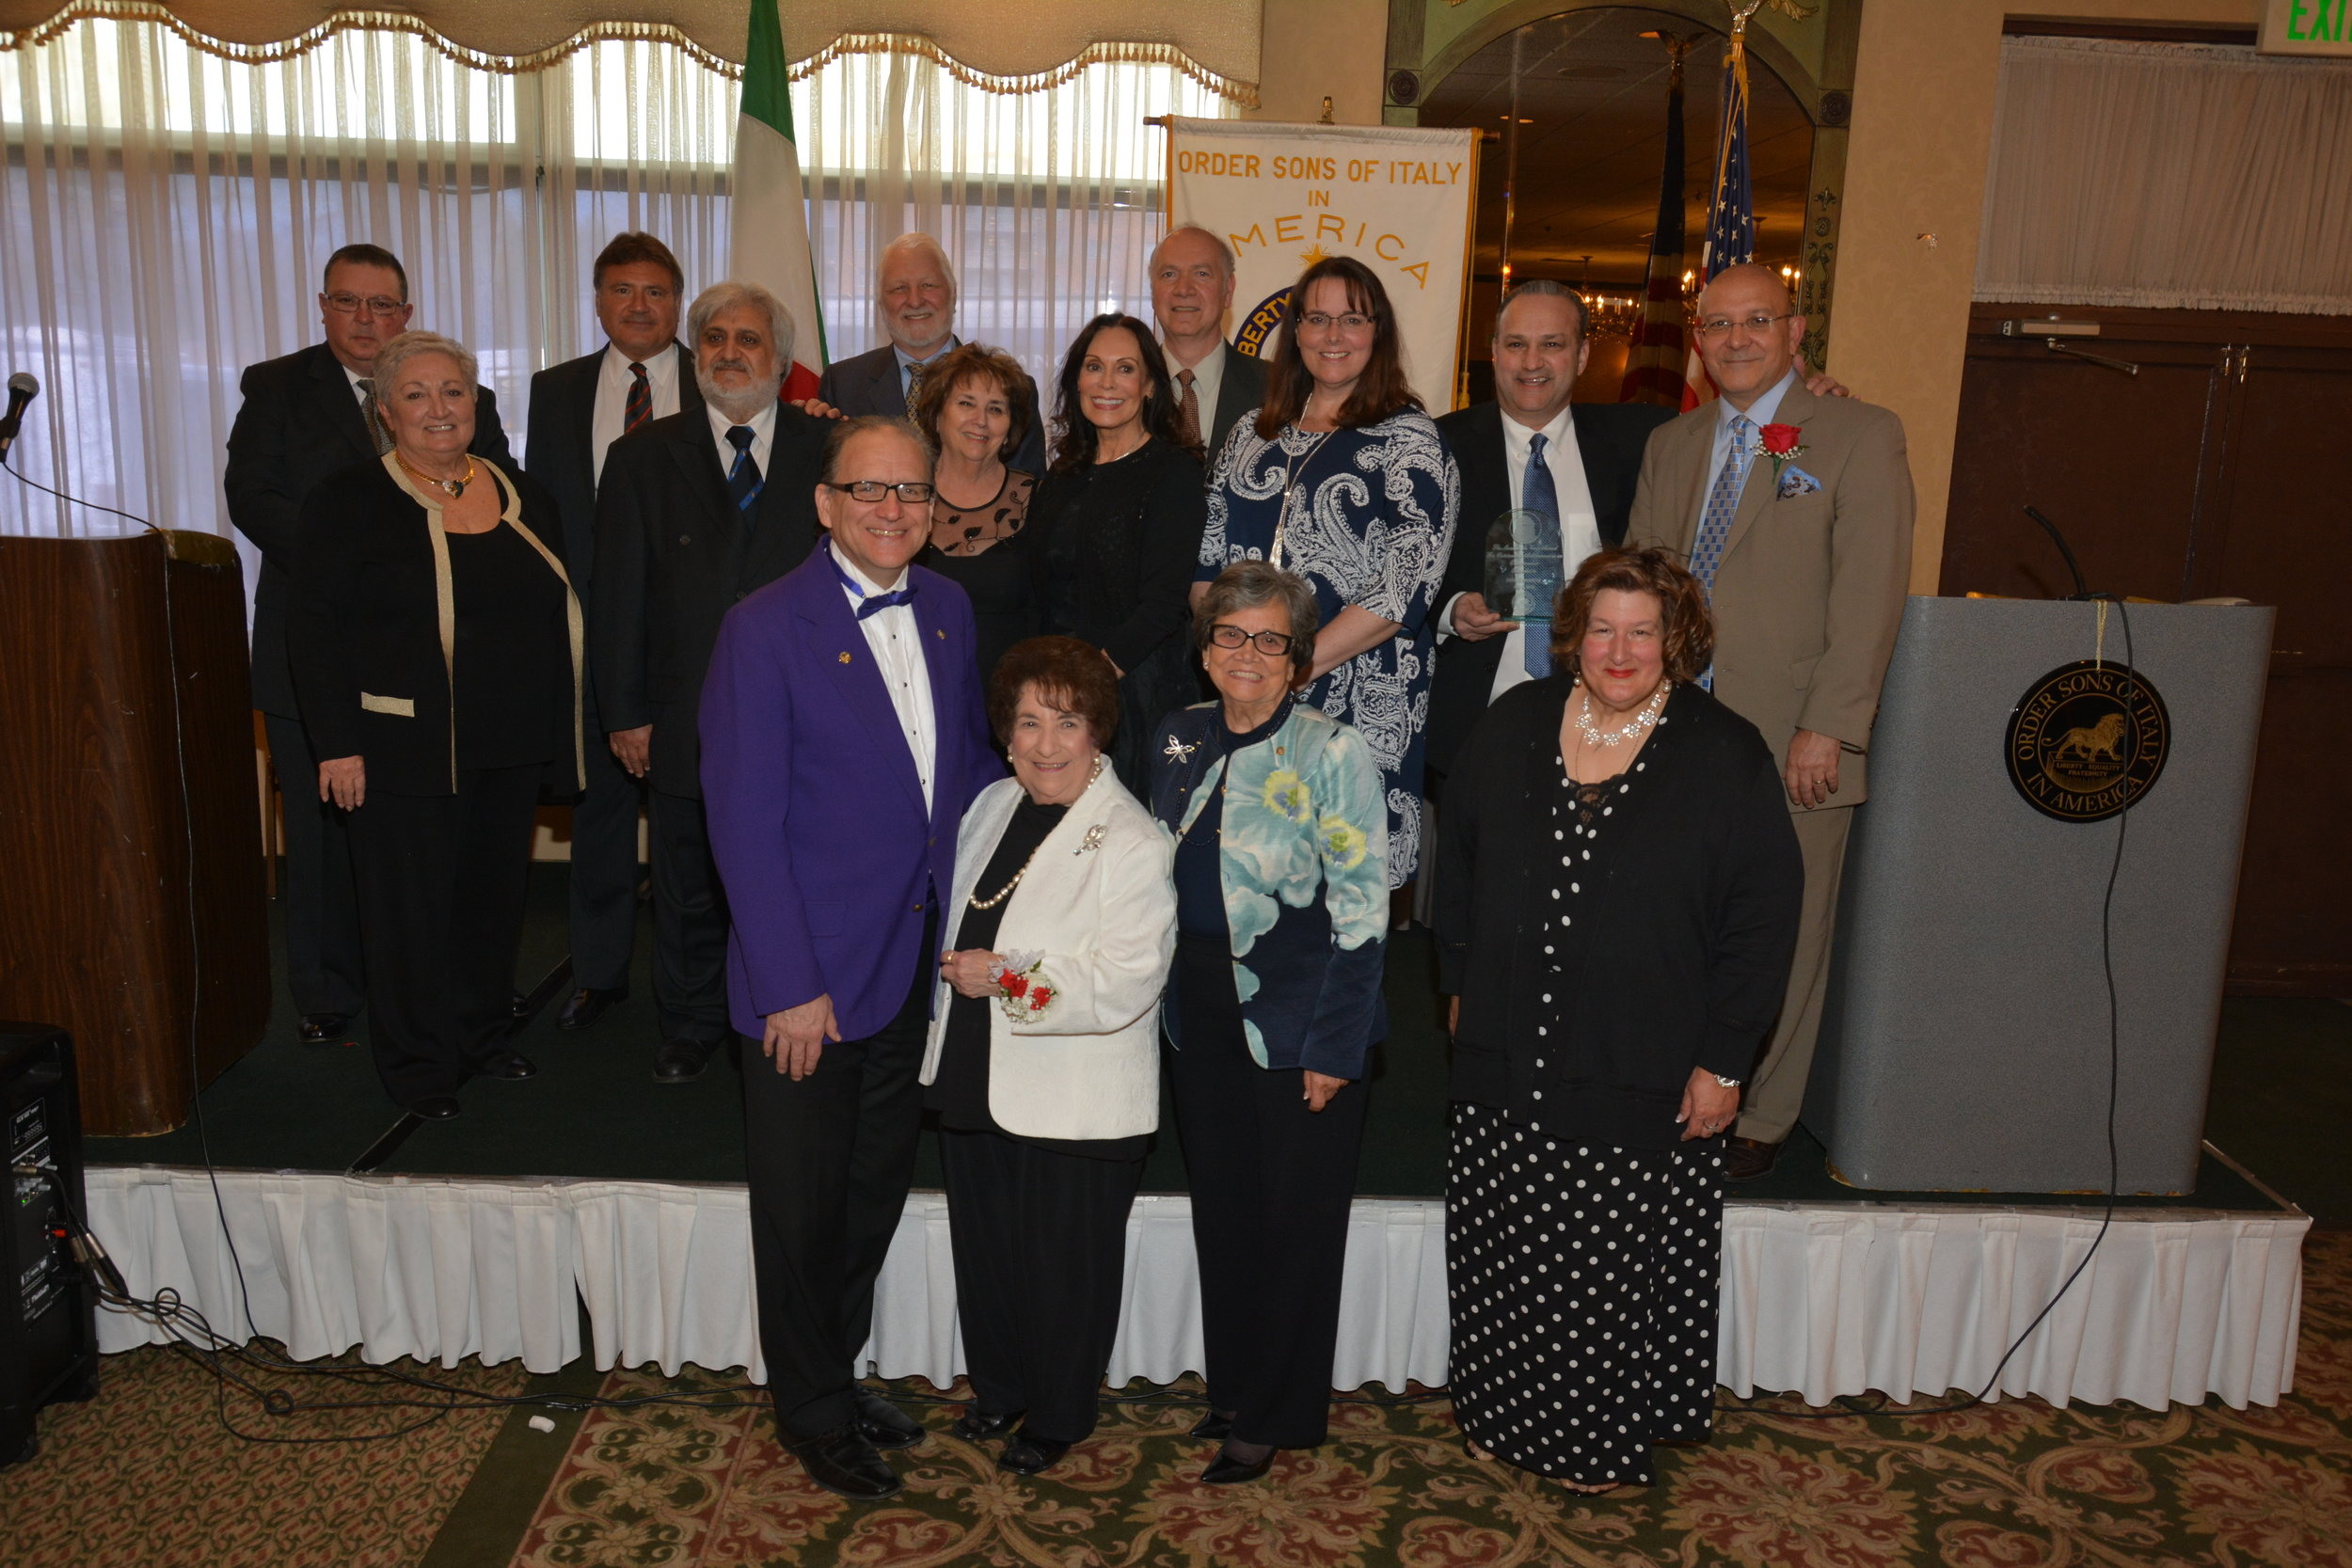 - Twelve distinguished professional Italian Americans were honored with a Leonardo da Vinci Award of Excellence at the 18th Annual Reception and Ceremony on May 5, 2019 at the White Eagle Banquets in Niles, Illinois. The event is hosted by the Grand Lodge of Illinois and Wisconsin, Order Sons and Daughters of Italy in America